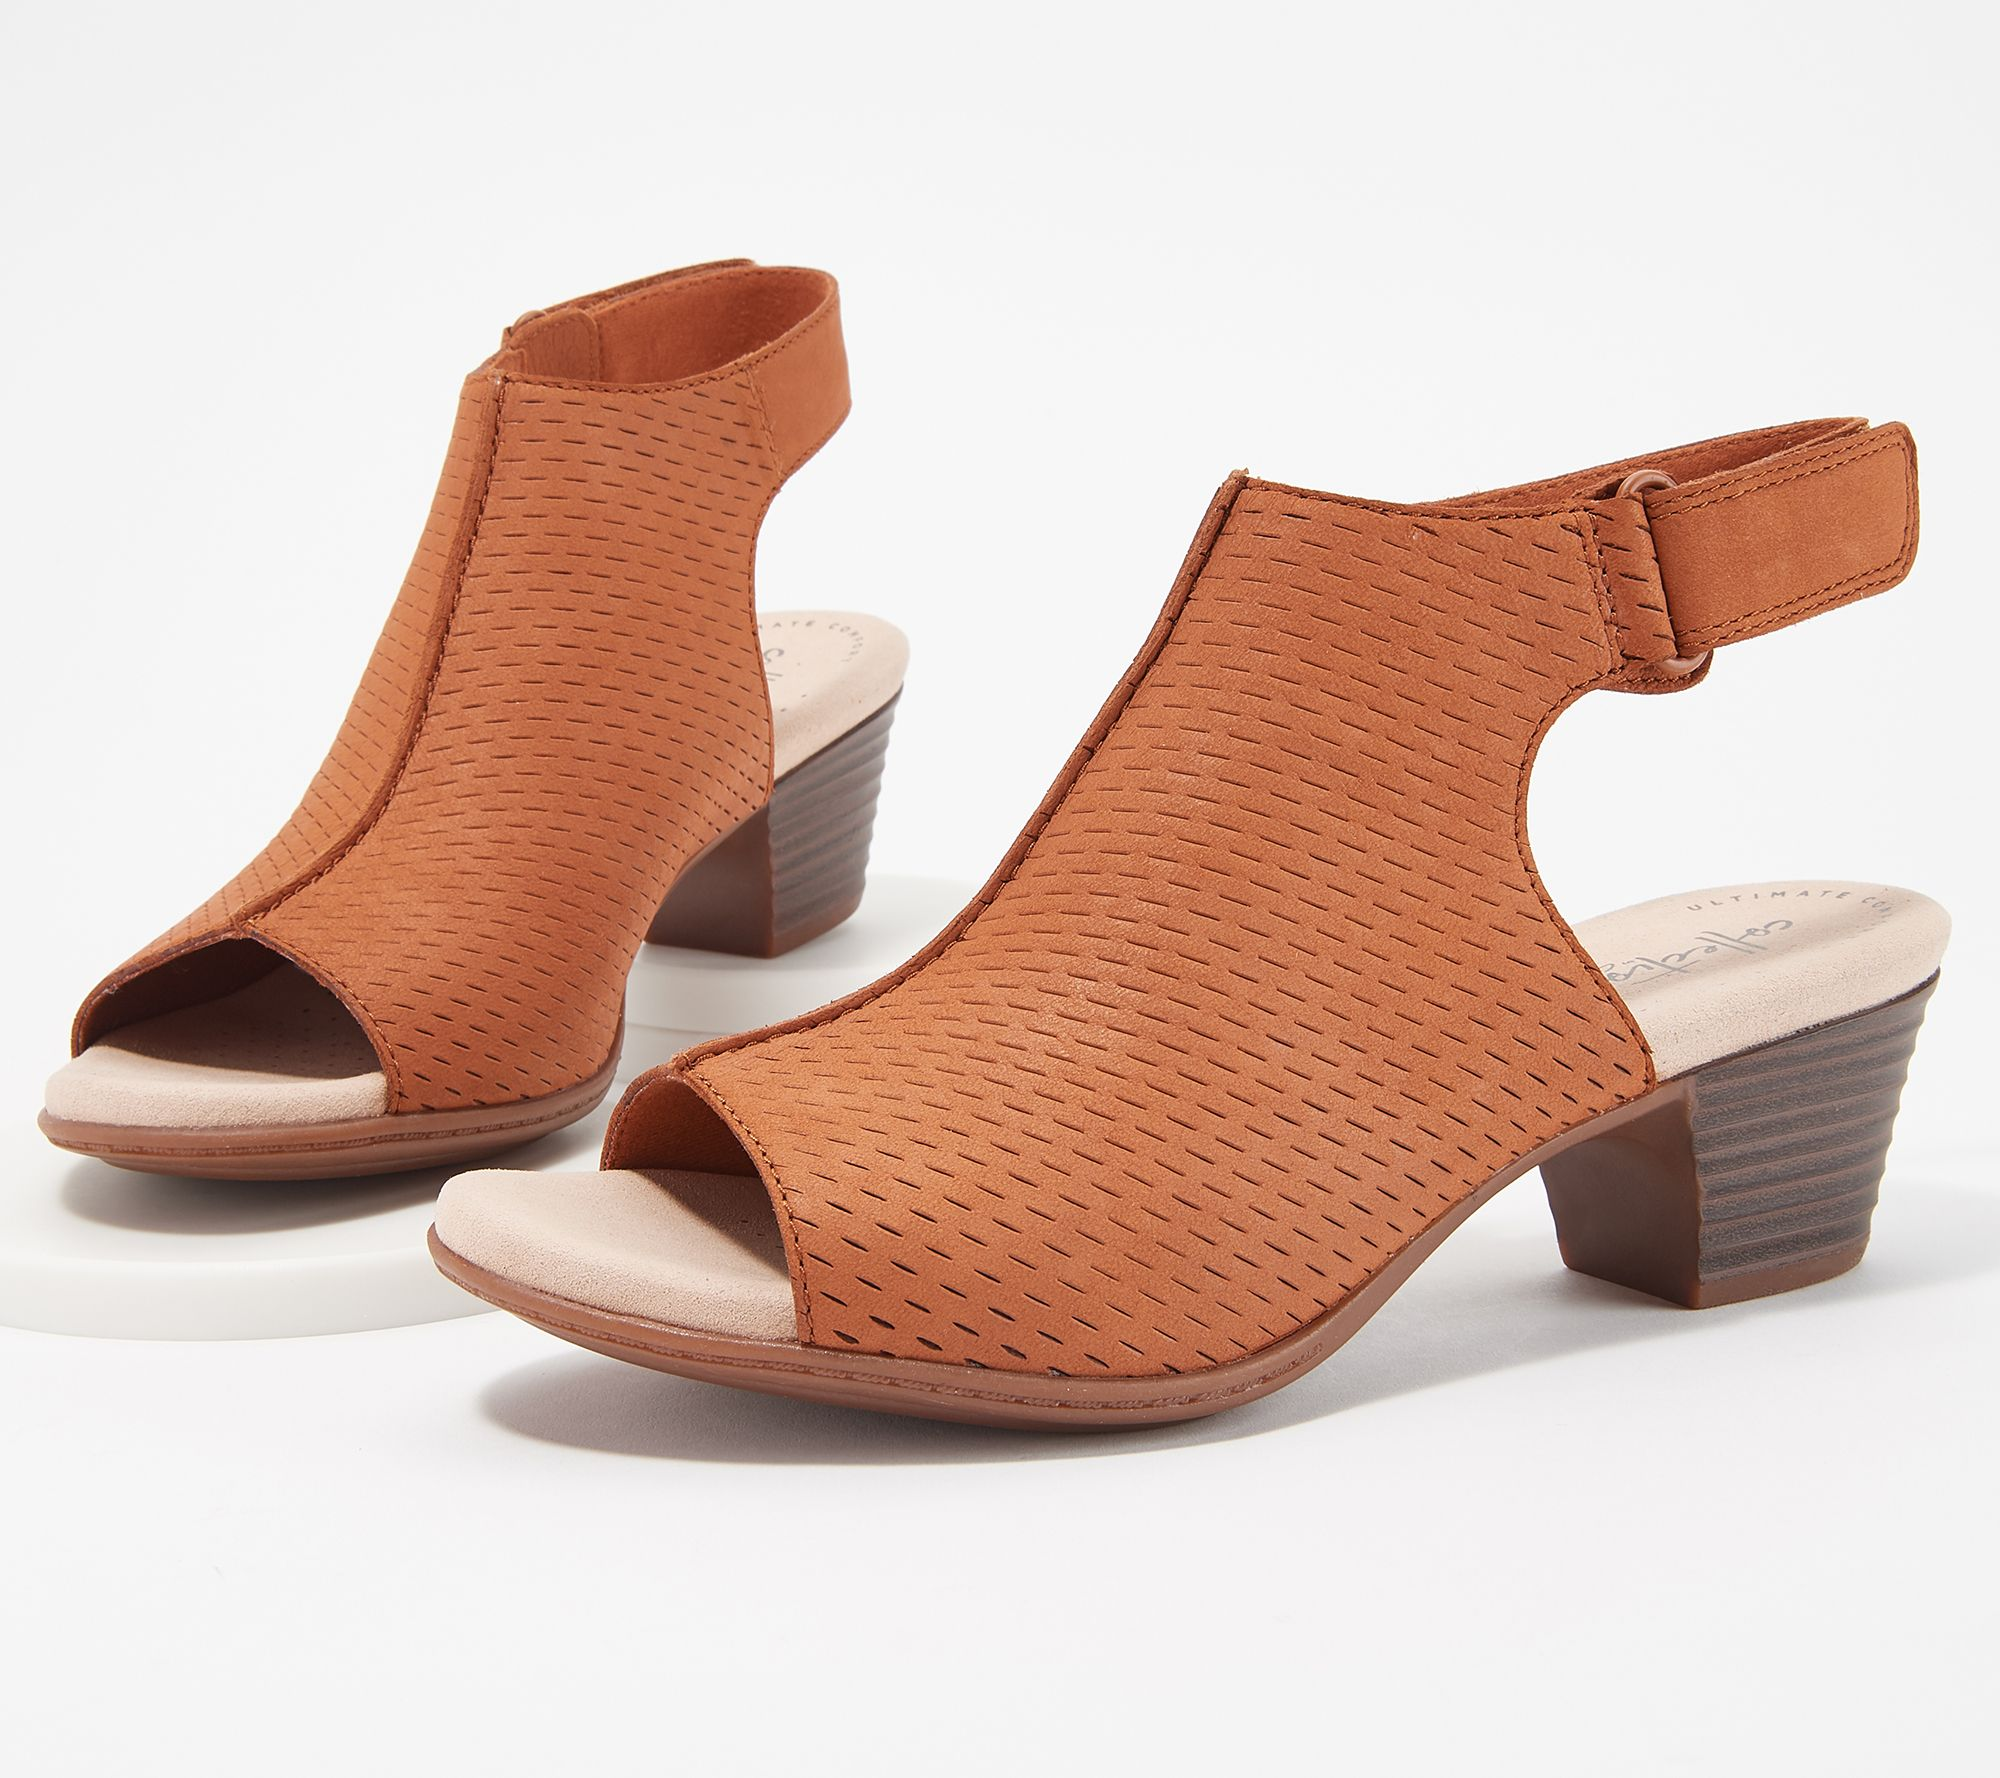 f84639c1 Clarks Collection Leather Heeled Sandals- Valarie James - Page 1 — QVC.com